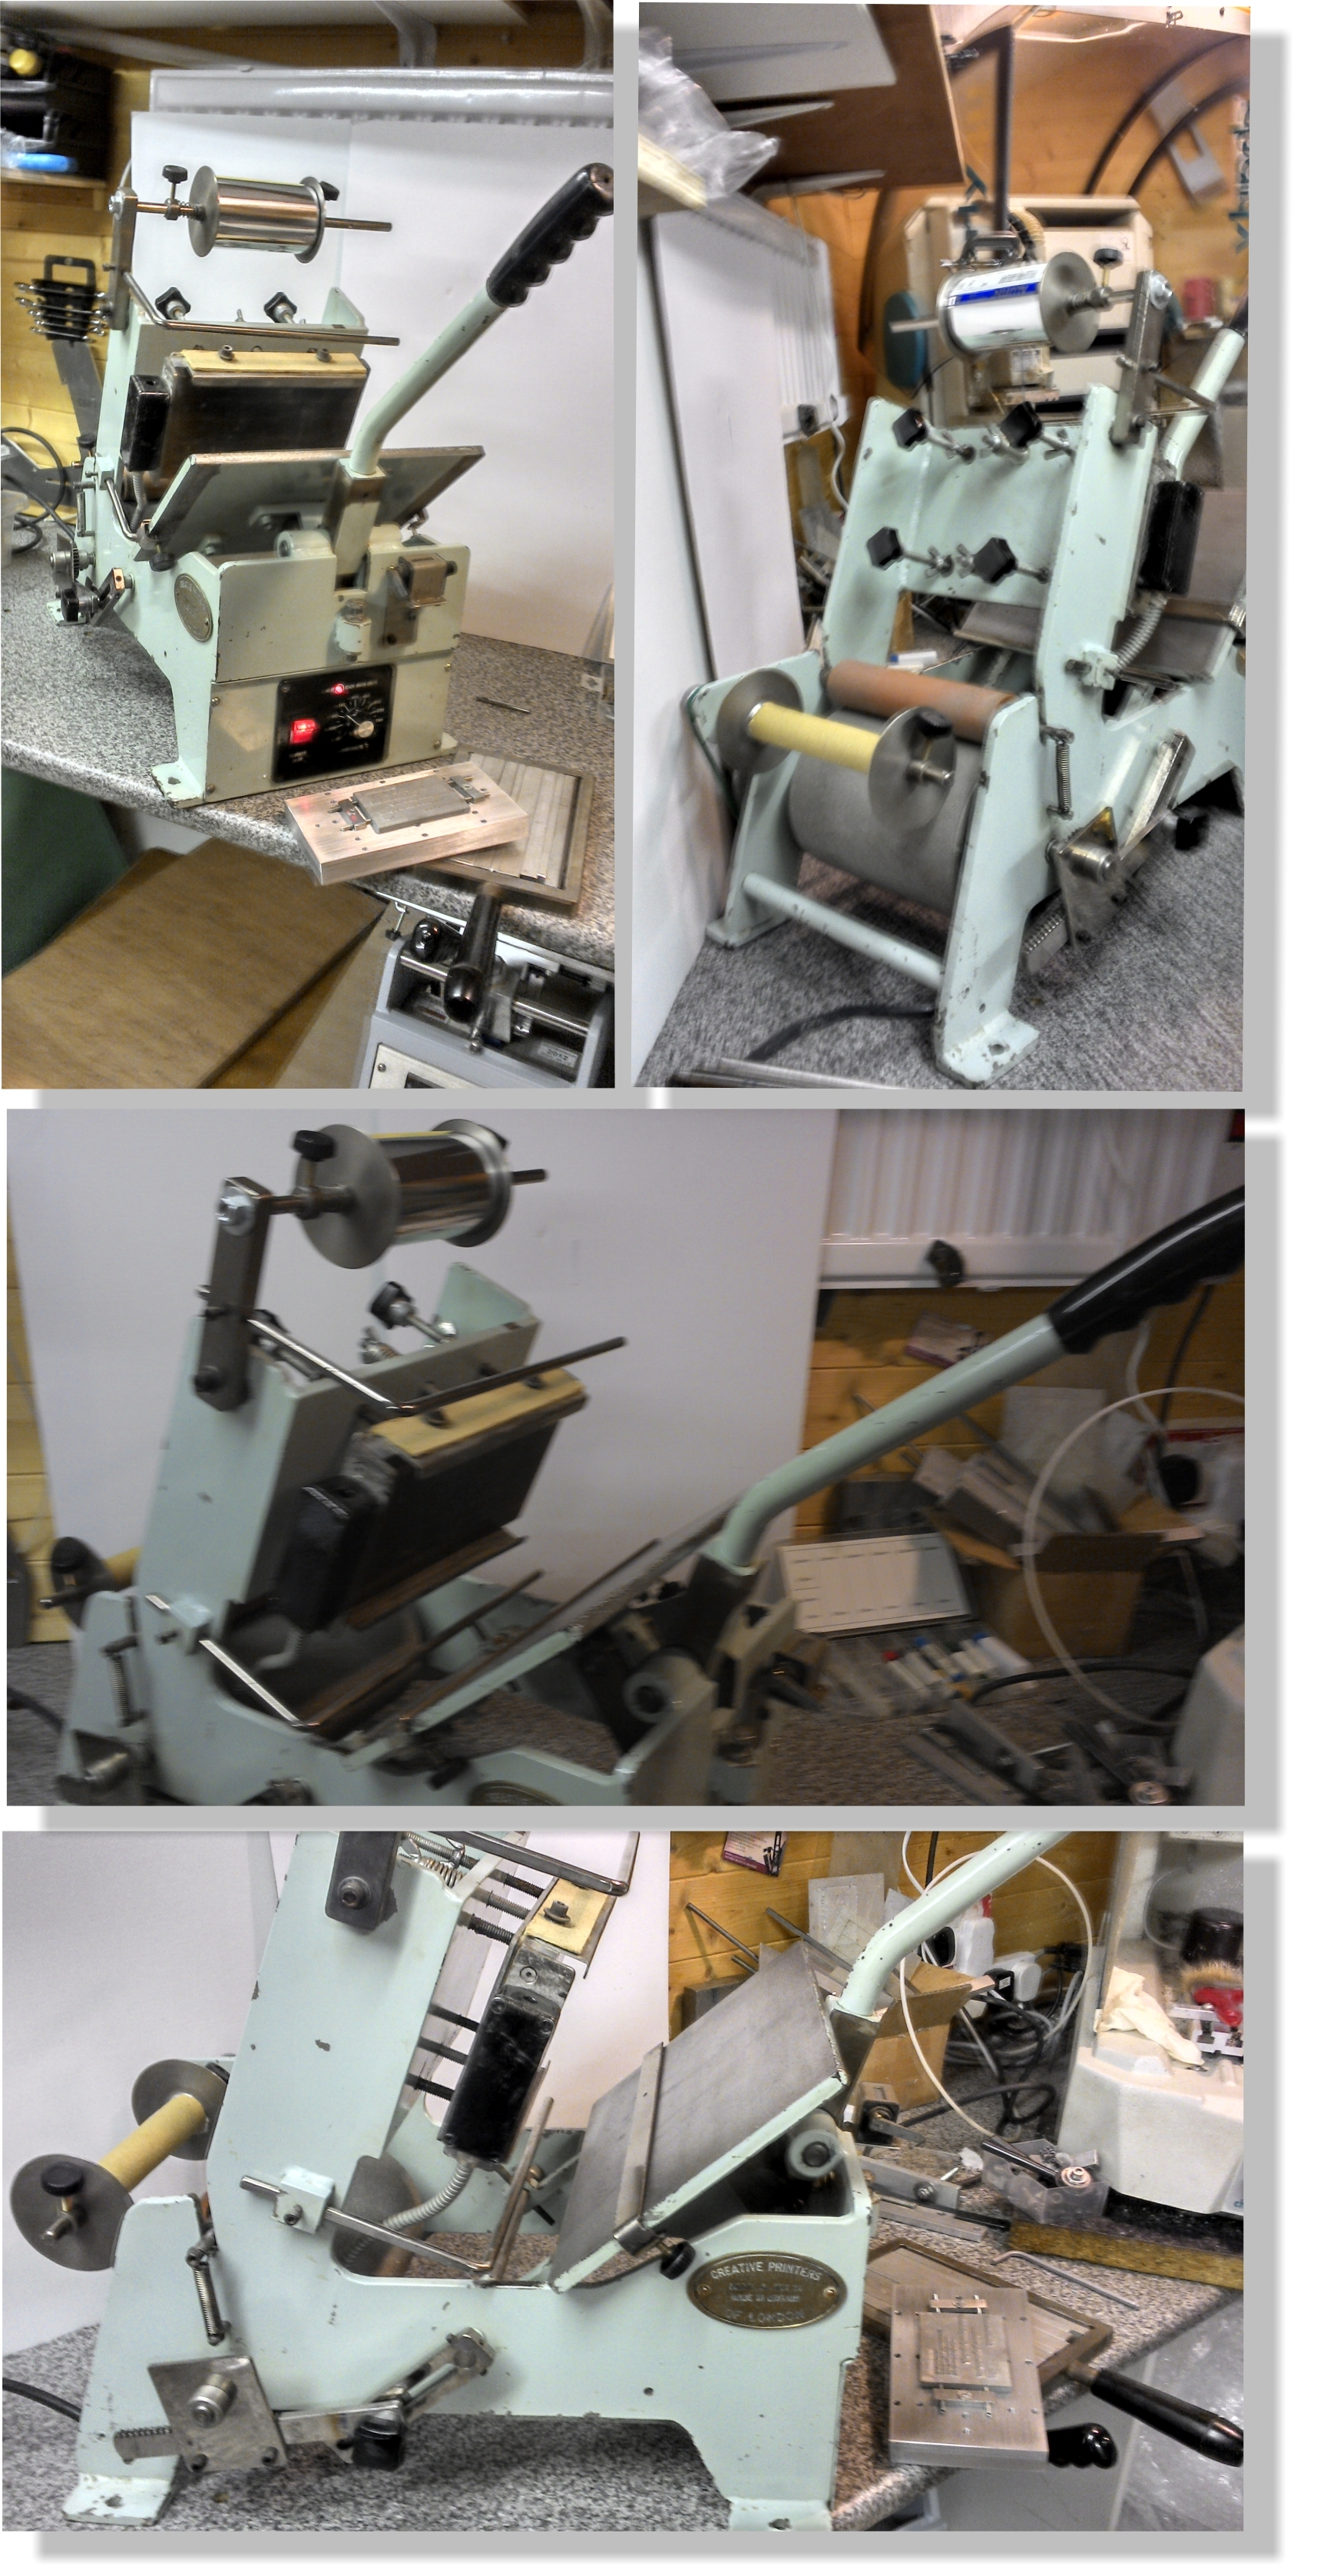 dut_21hot foil printing machine